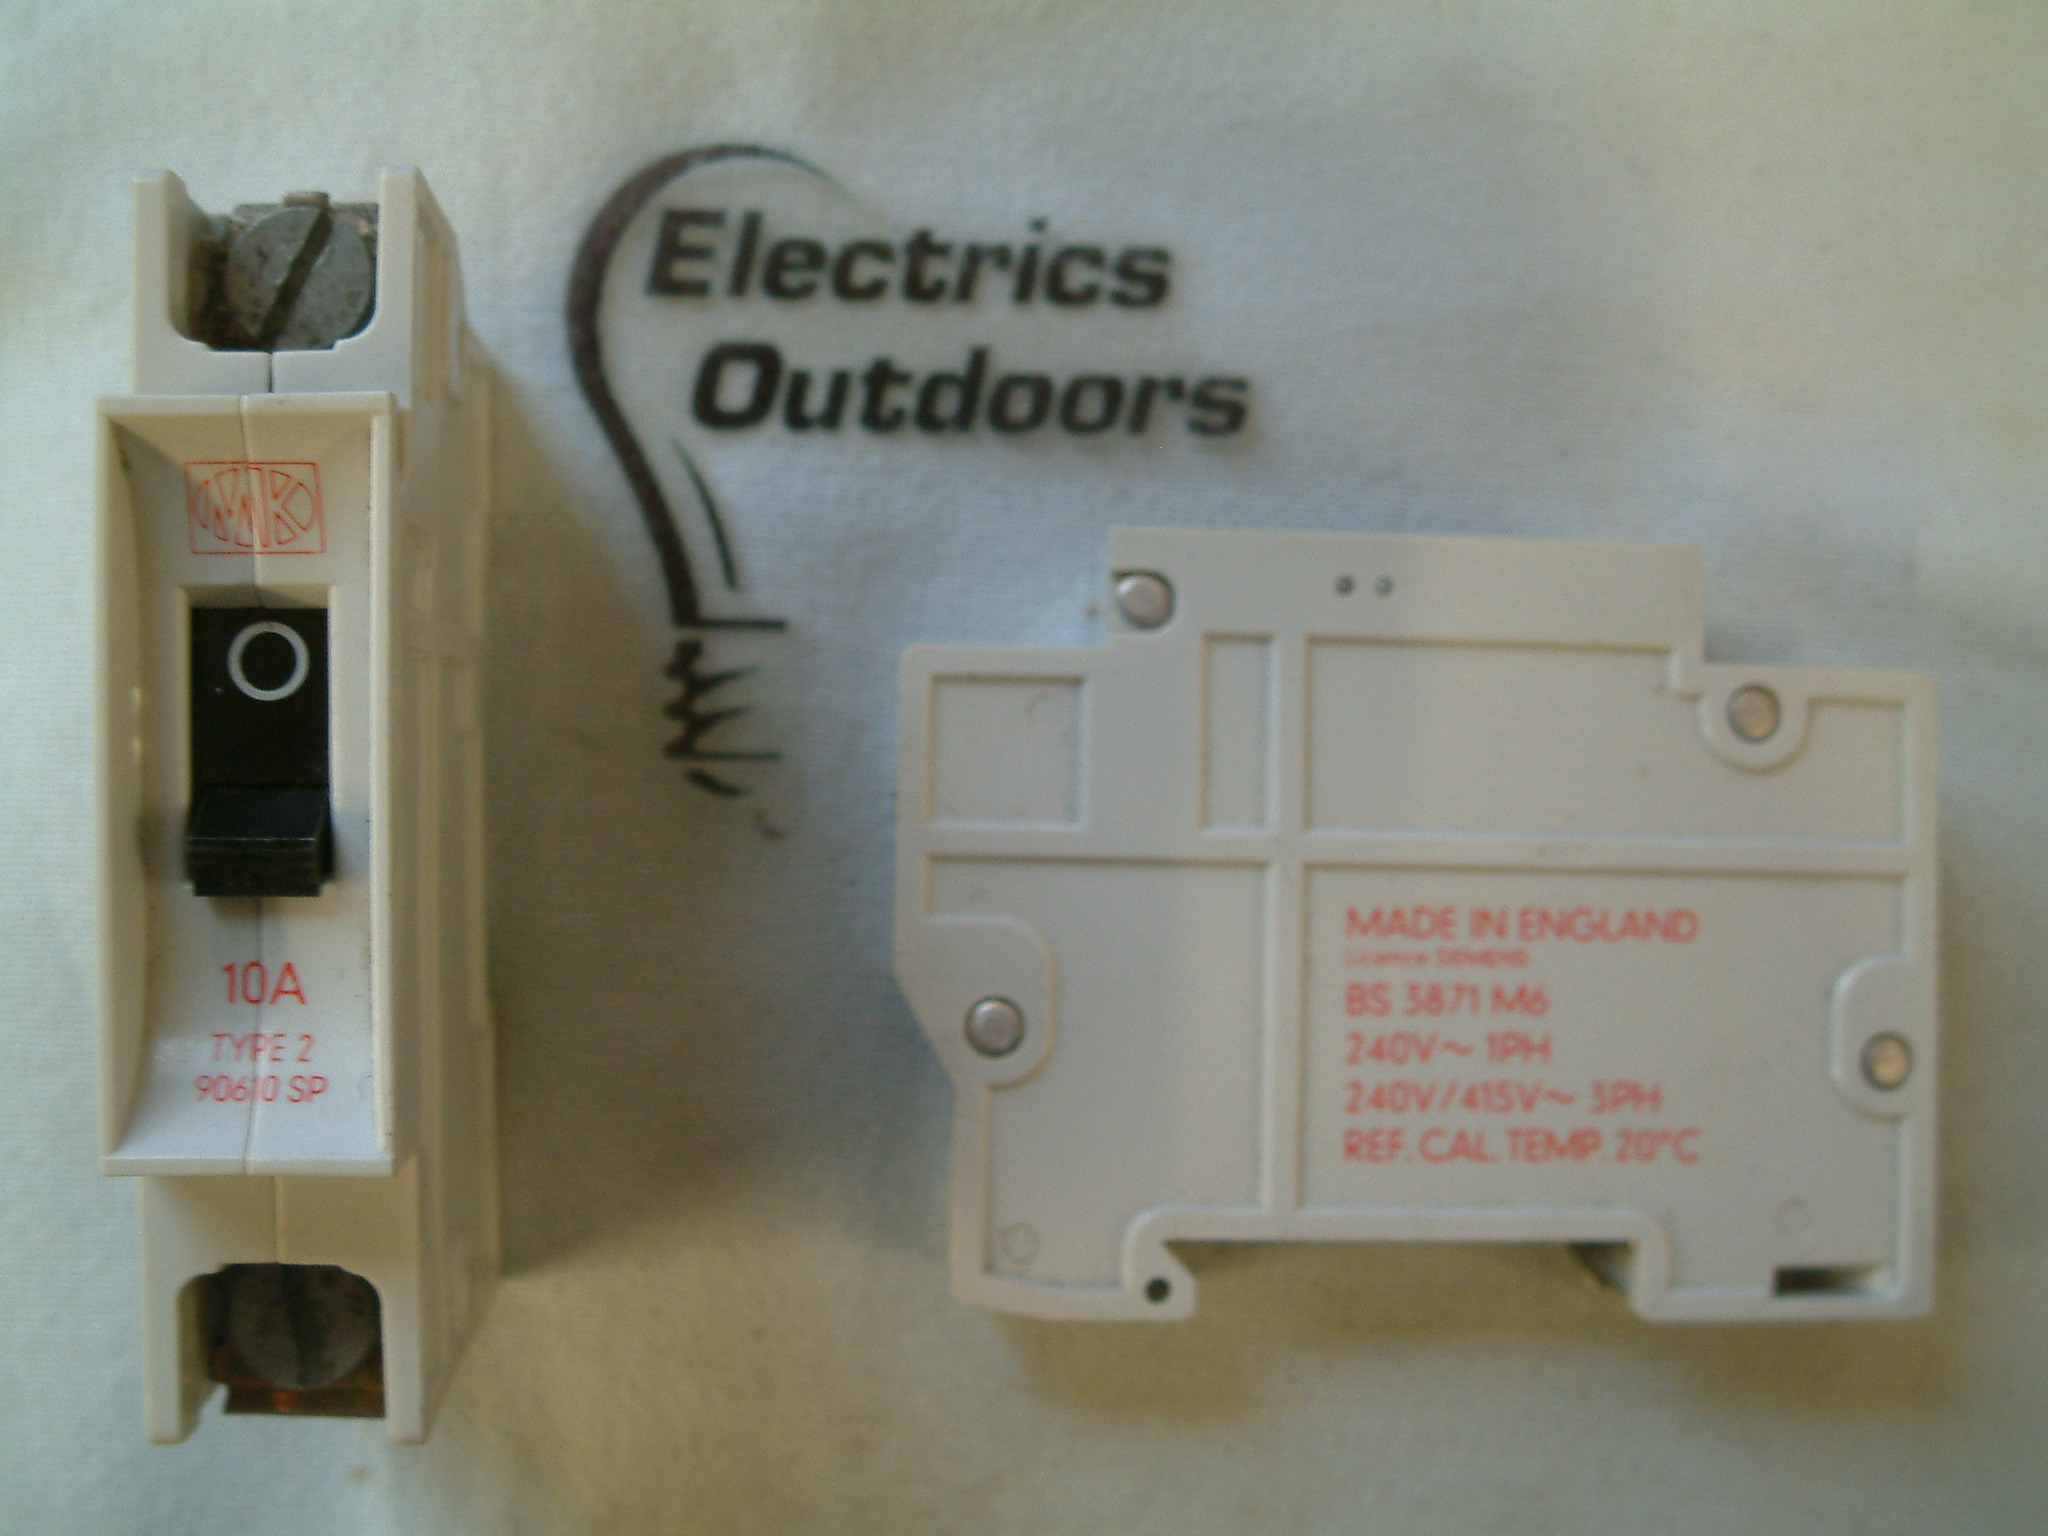 MK 10 AMP TYPE 2 M6 240V SINGLE POLE MCB CIRCUIT BREAKER 90610 S